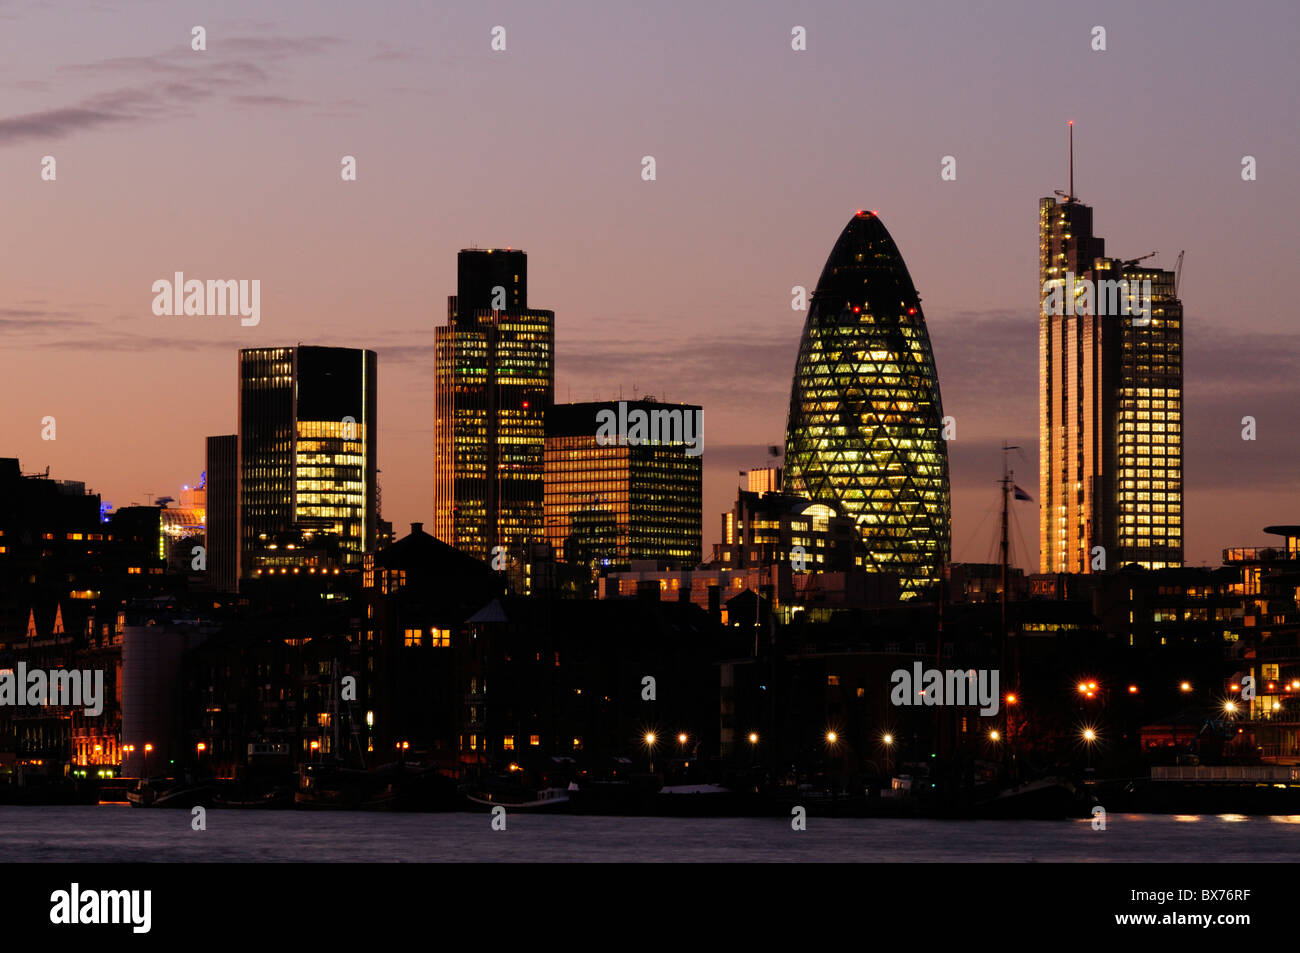 city of london skyline at night including tower 42 30 st. Black Bedroom Furniture Sets. Home Design Ideas